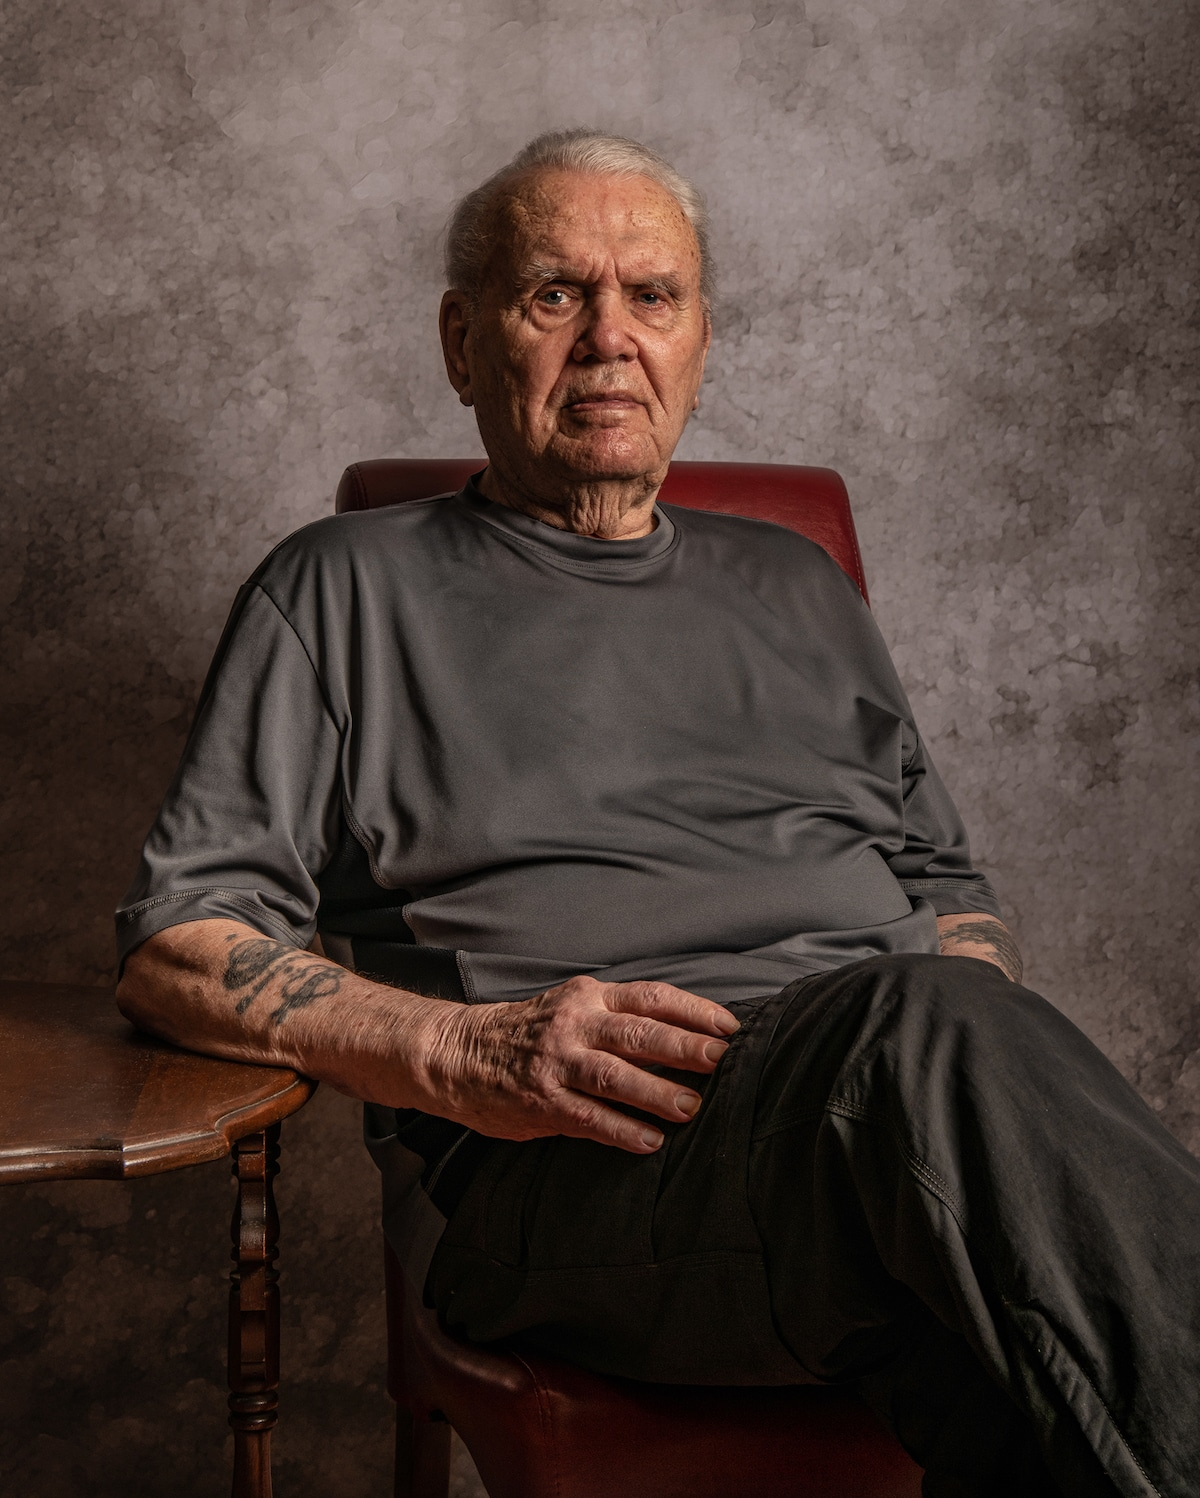 Army Veteran Portrait by Jeffrey Rease